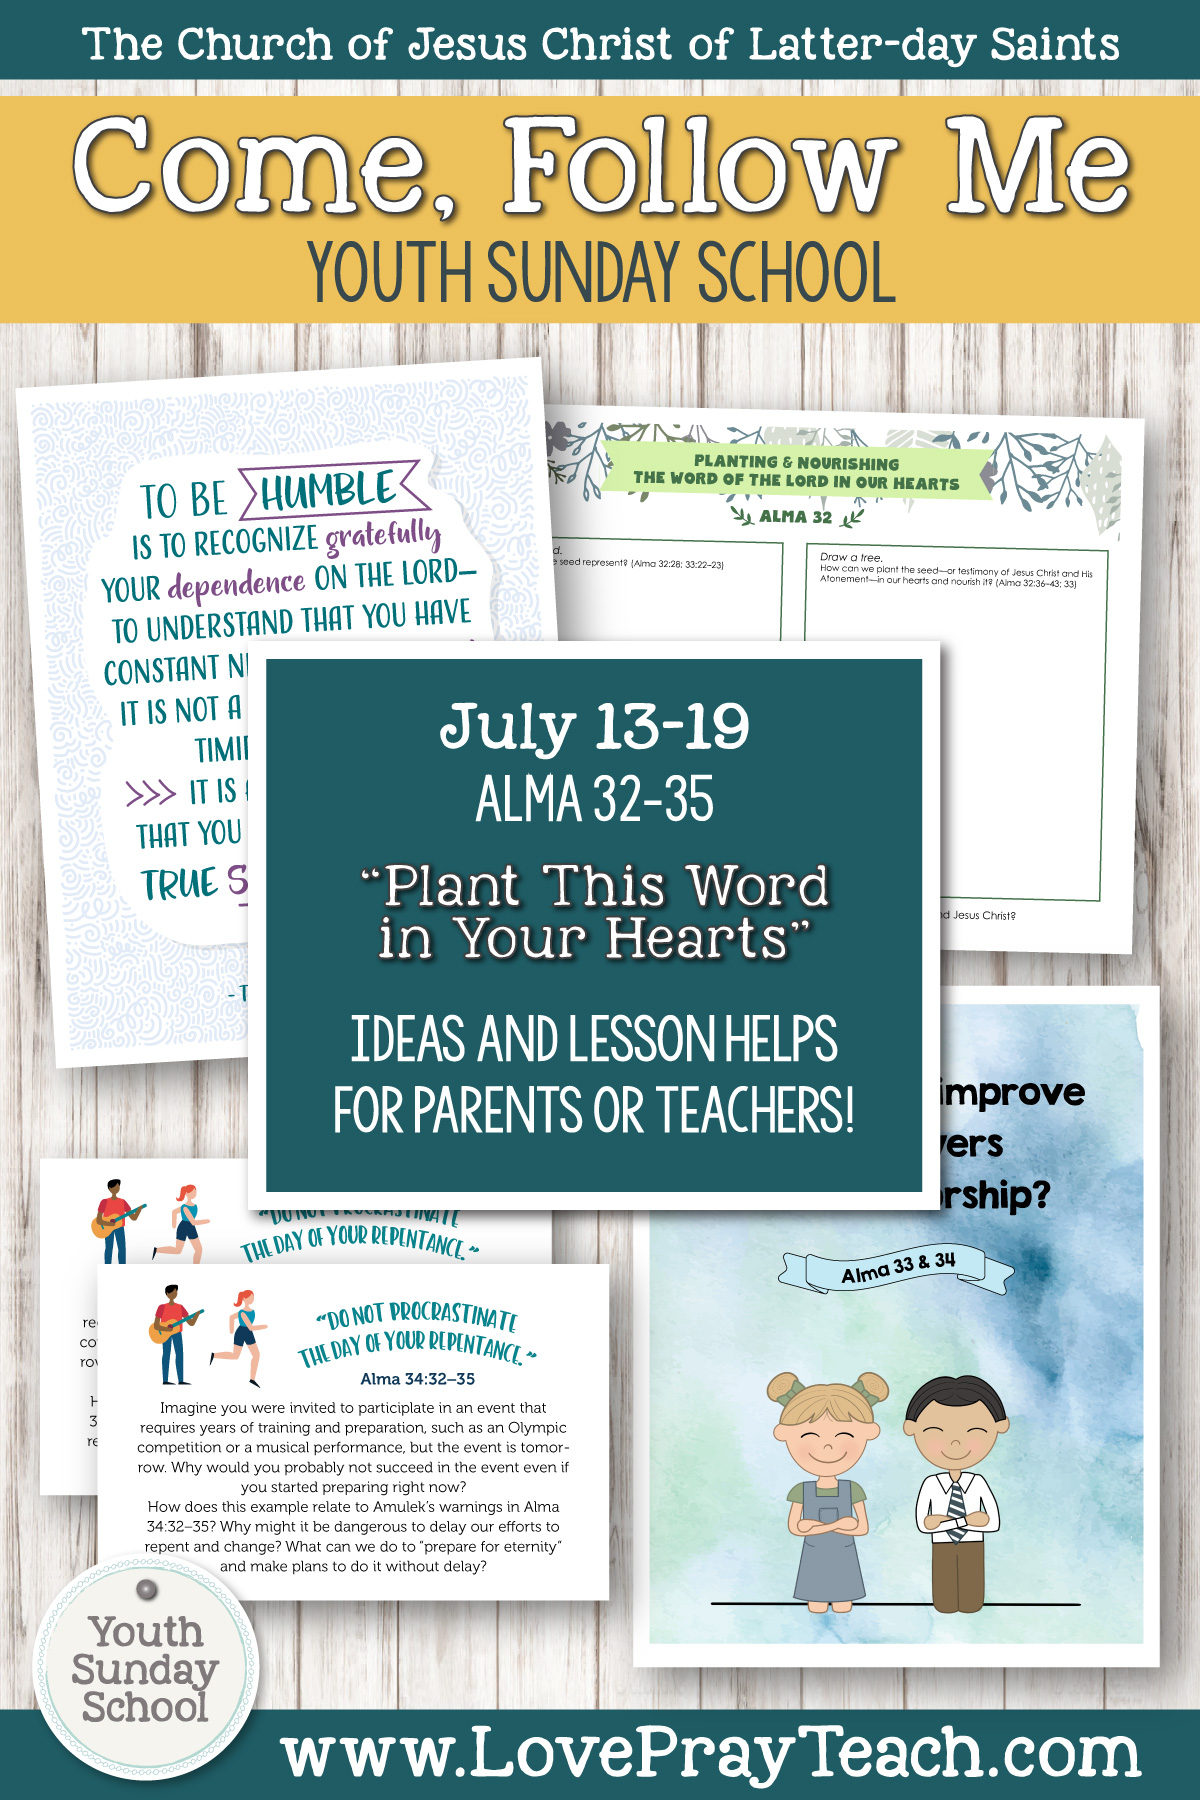 """Youth Sunday School Come, Follow Me Book of Mormon 2020 July 13–19 Alma 32–35 """"Plant This Word in Your Hearts"""" Printable Lesson Packet for Latter-day Saints for Parents AND Teachers"""